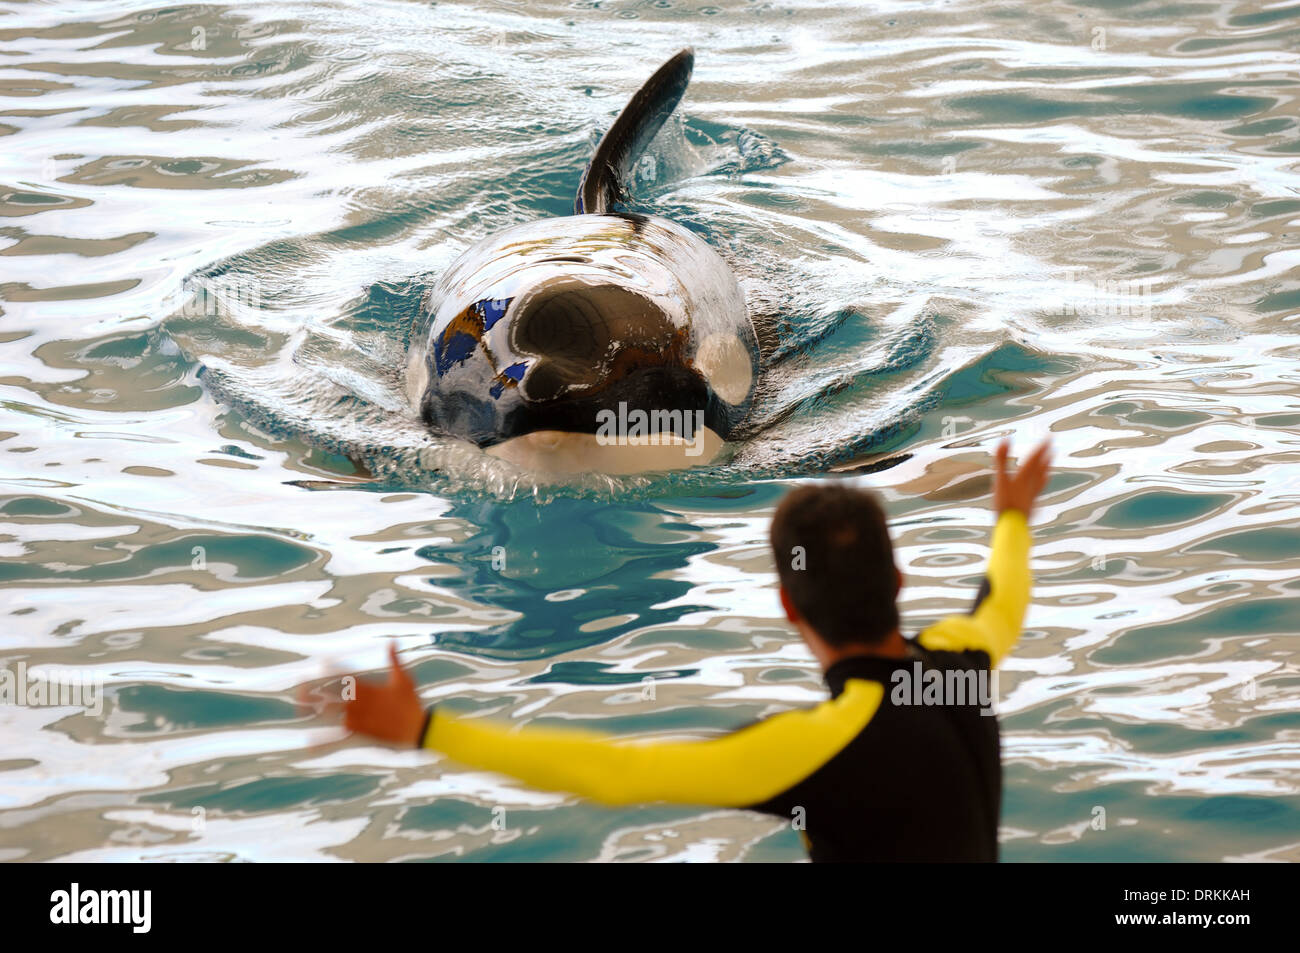 Killer whale and its trainer - Stock Image